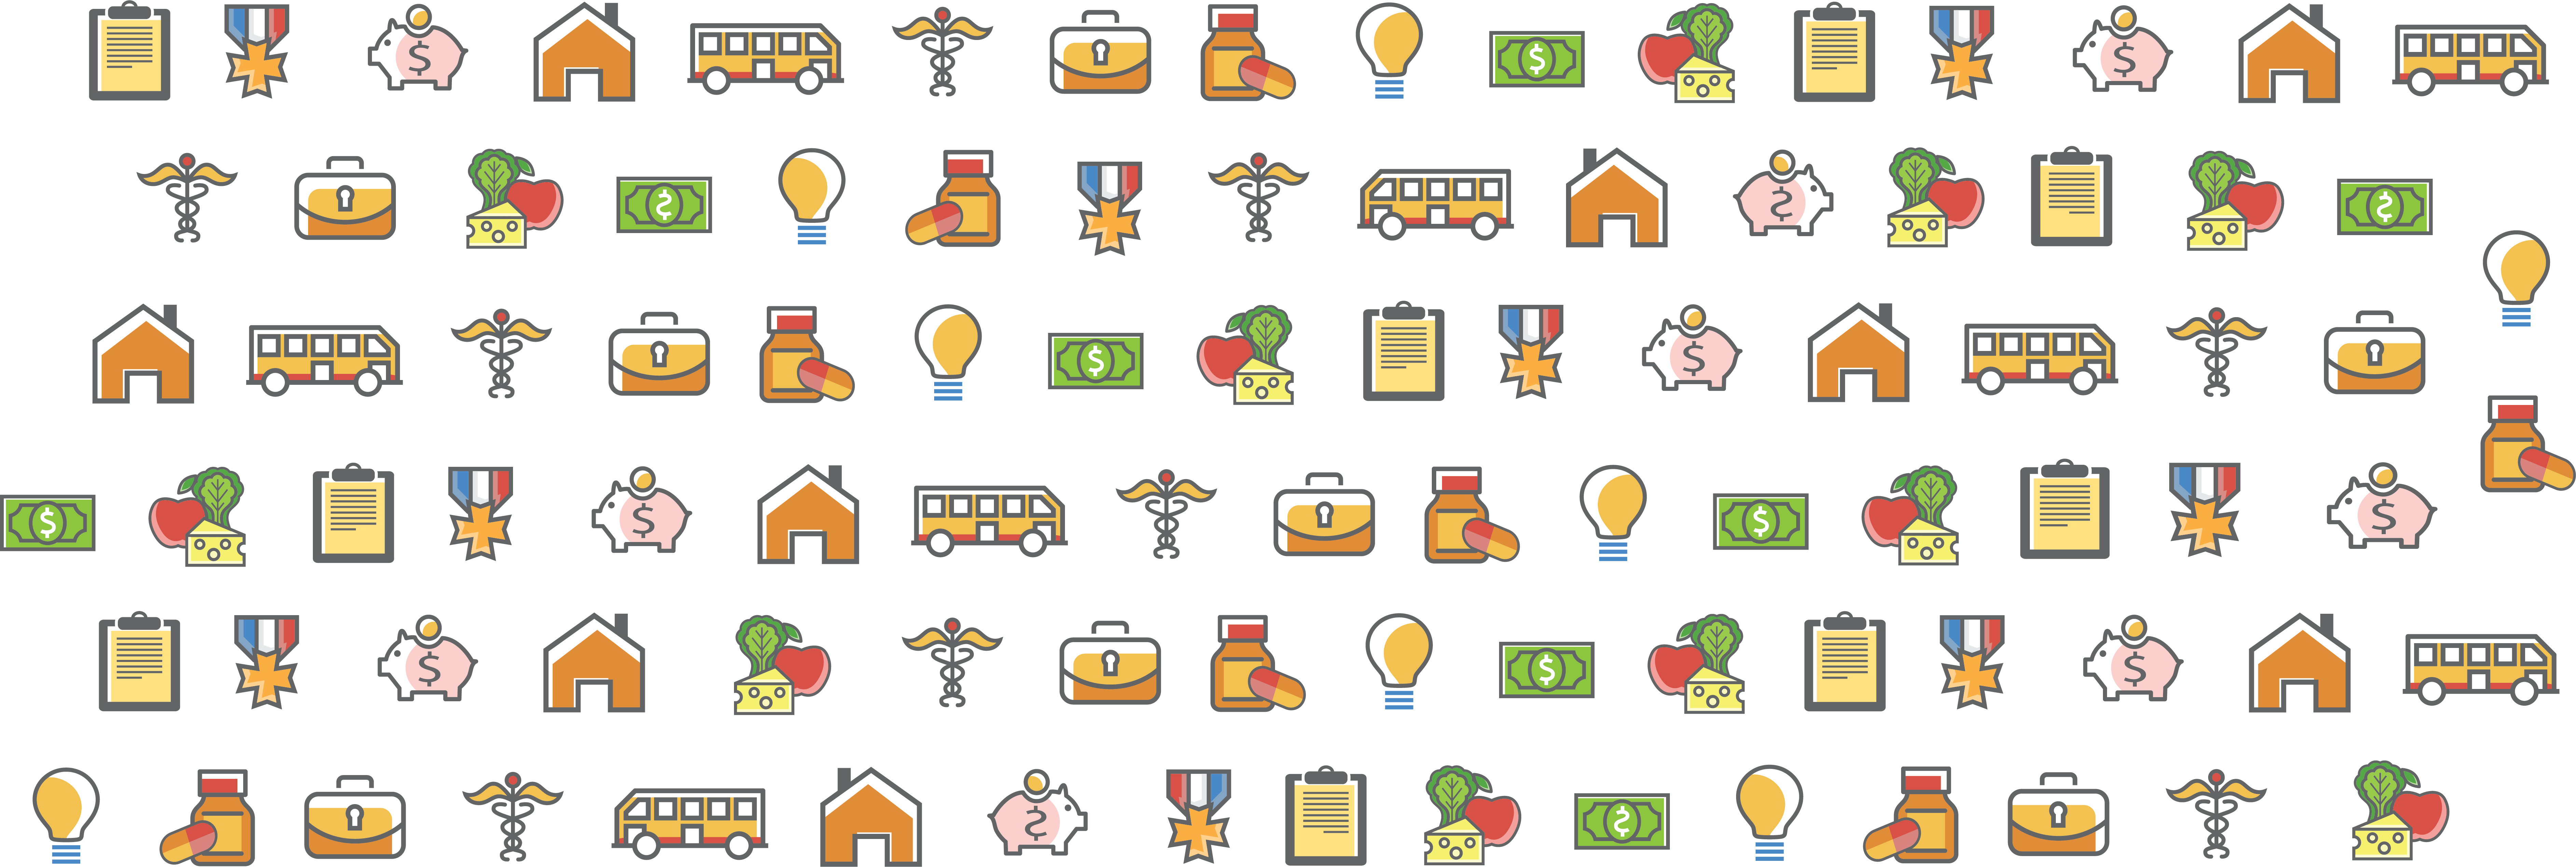 Graphic collage of icons representing benefits